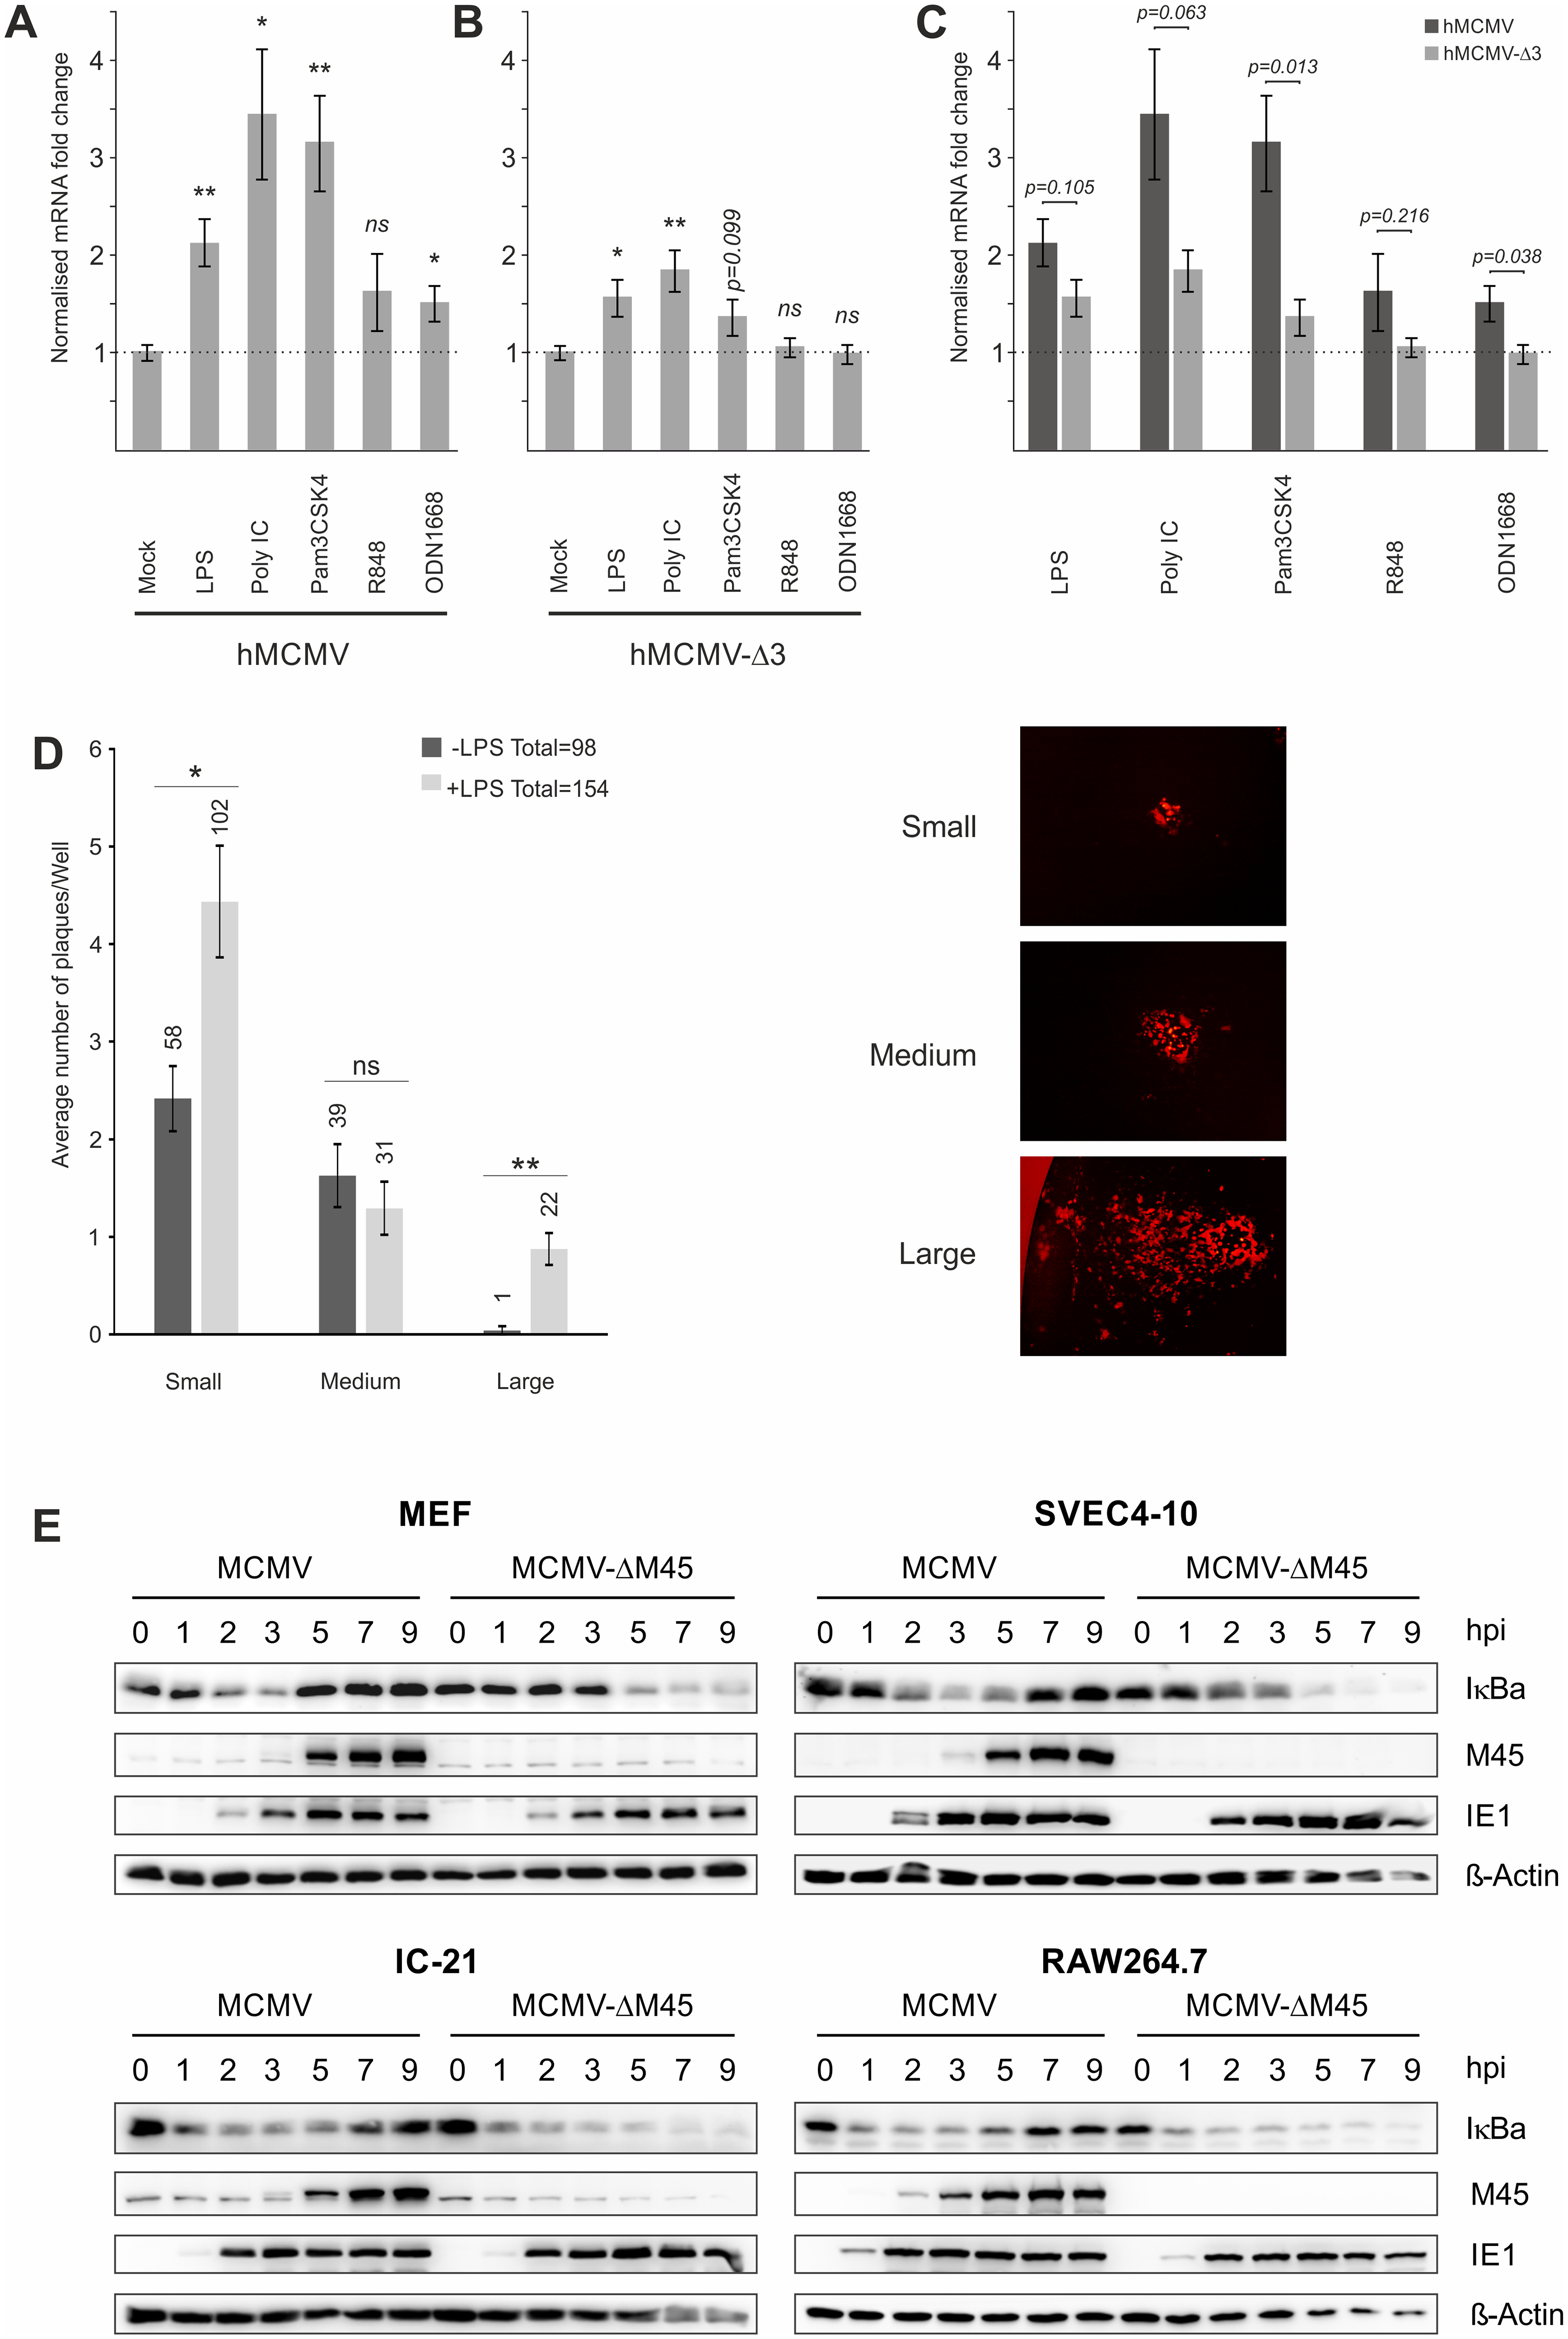 Effects of TLR-agonists go beyond NFκB activity and are independent of tegument proteins.